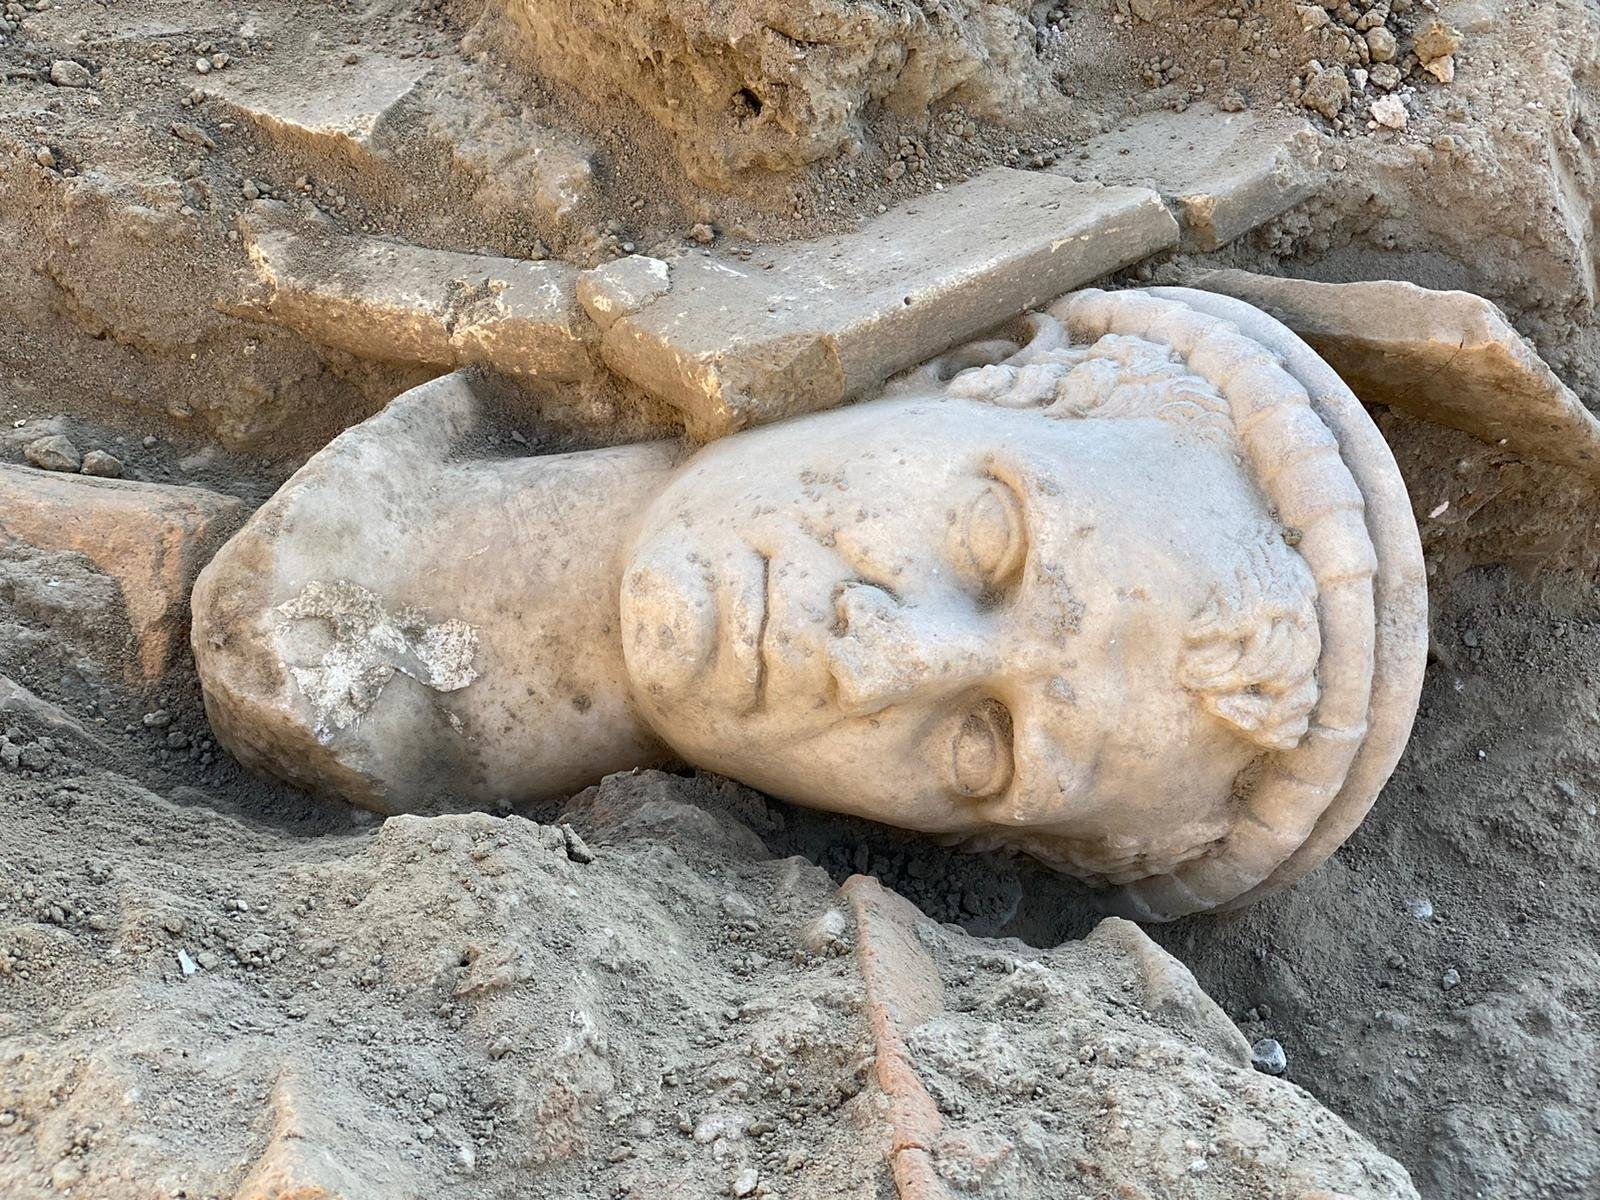 The head statue lies where it was discovered in the ancient city of Laodicea, Denizli, southwestern Turkey, Nov. 28, 2020. (AA PHOTO)